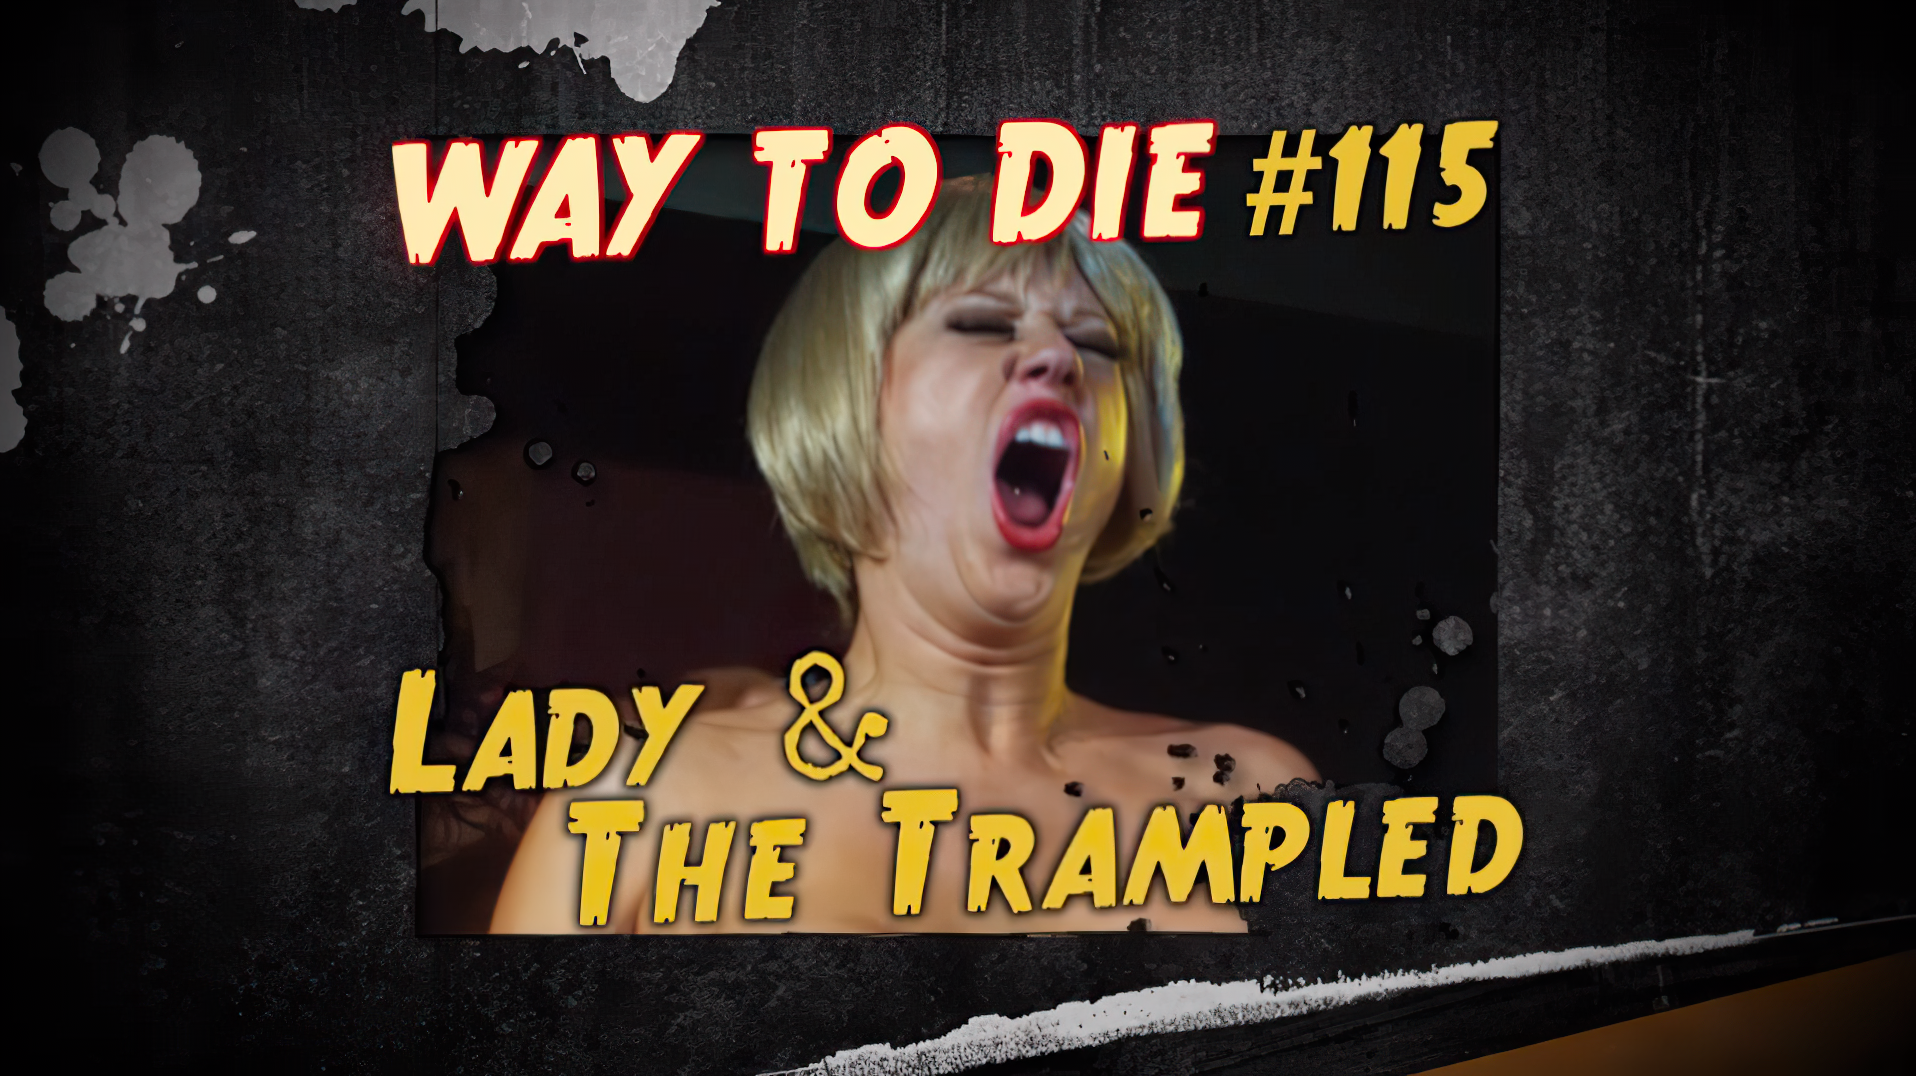 Lady & The Trampled